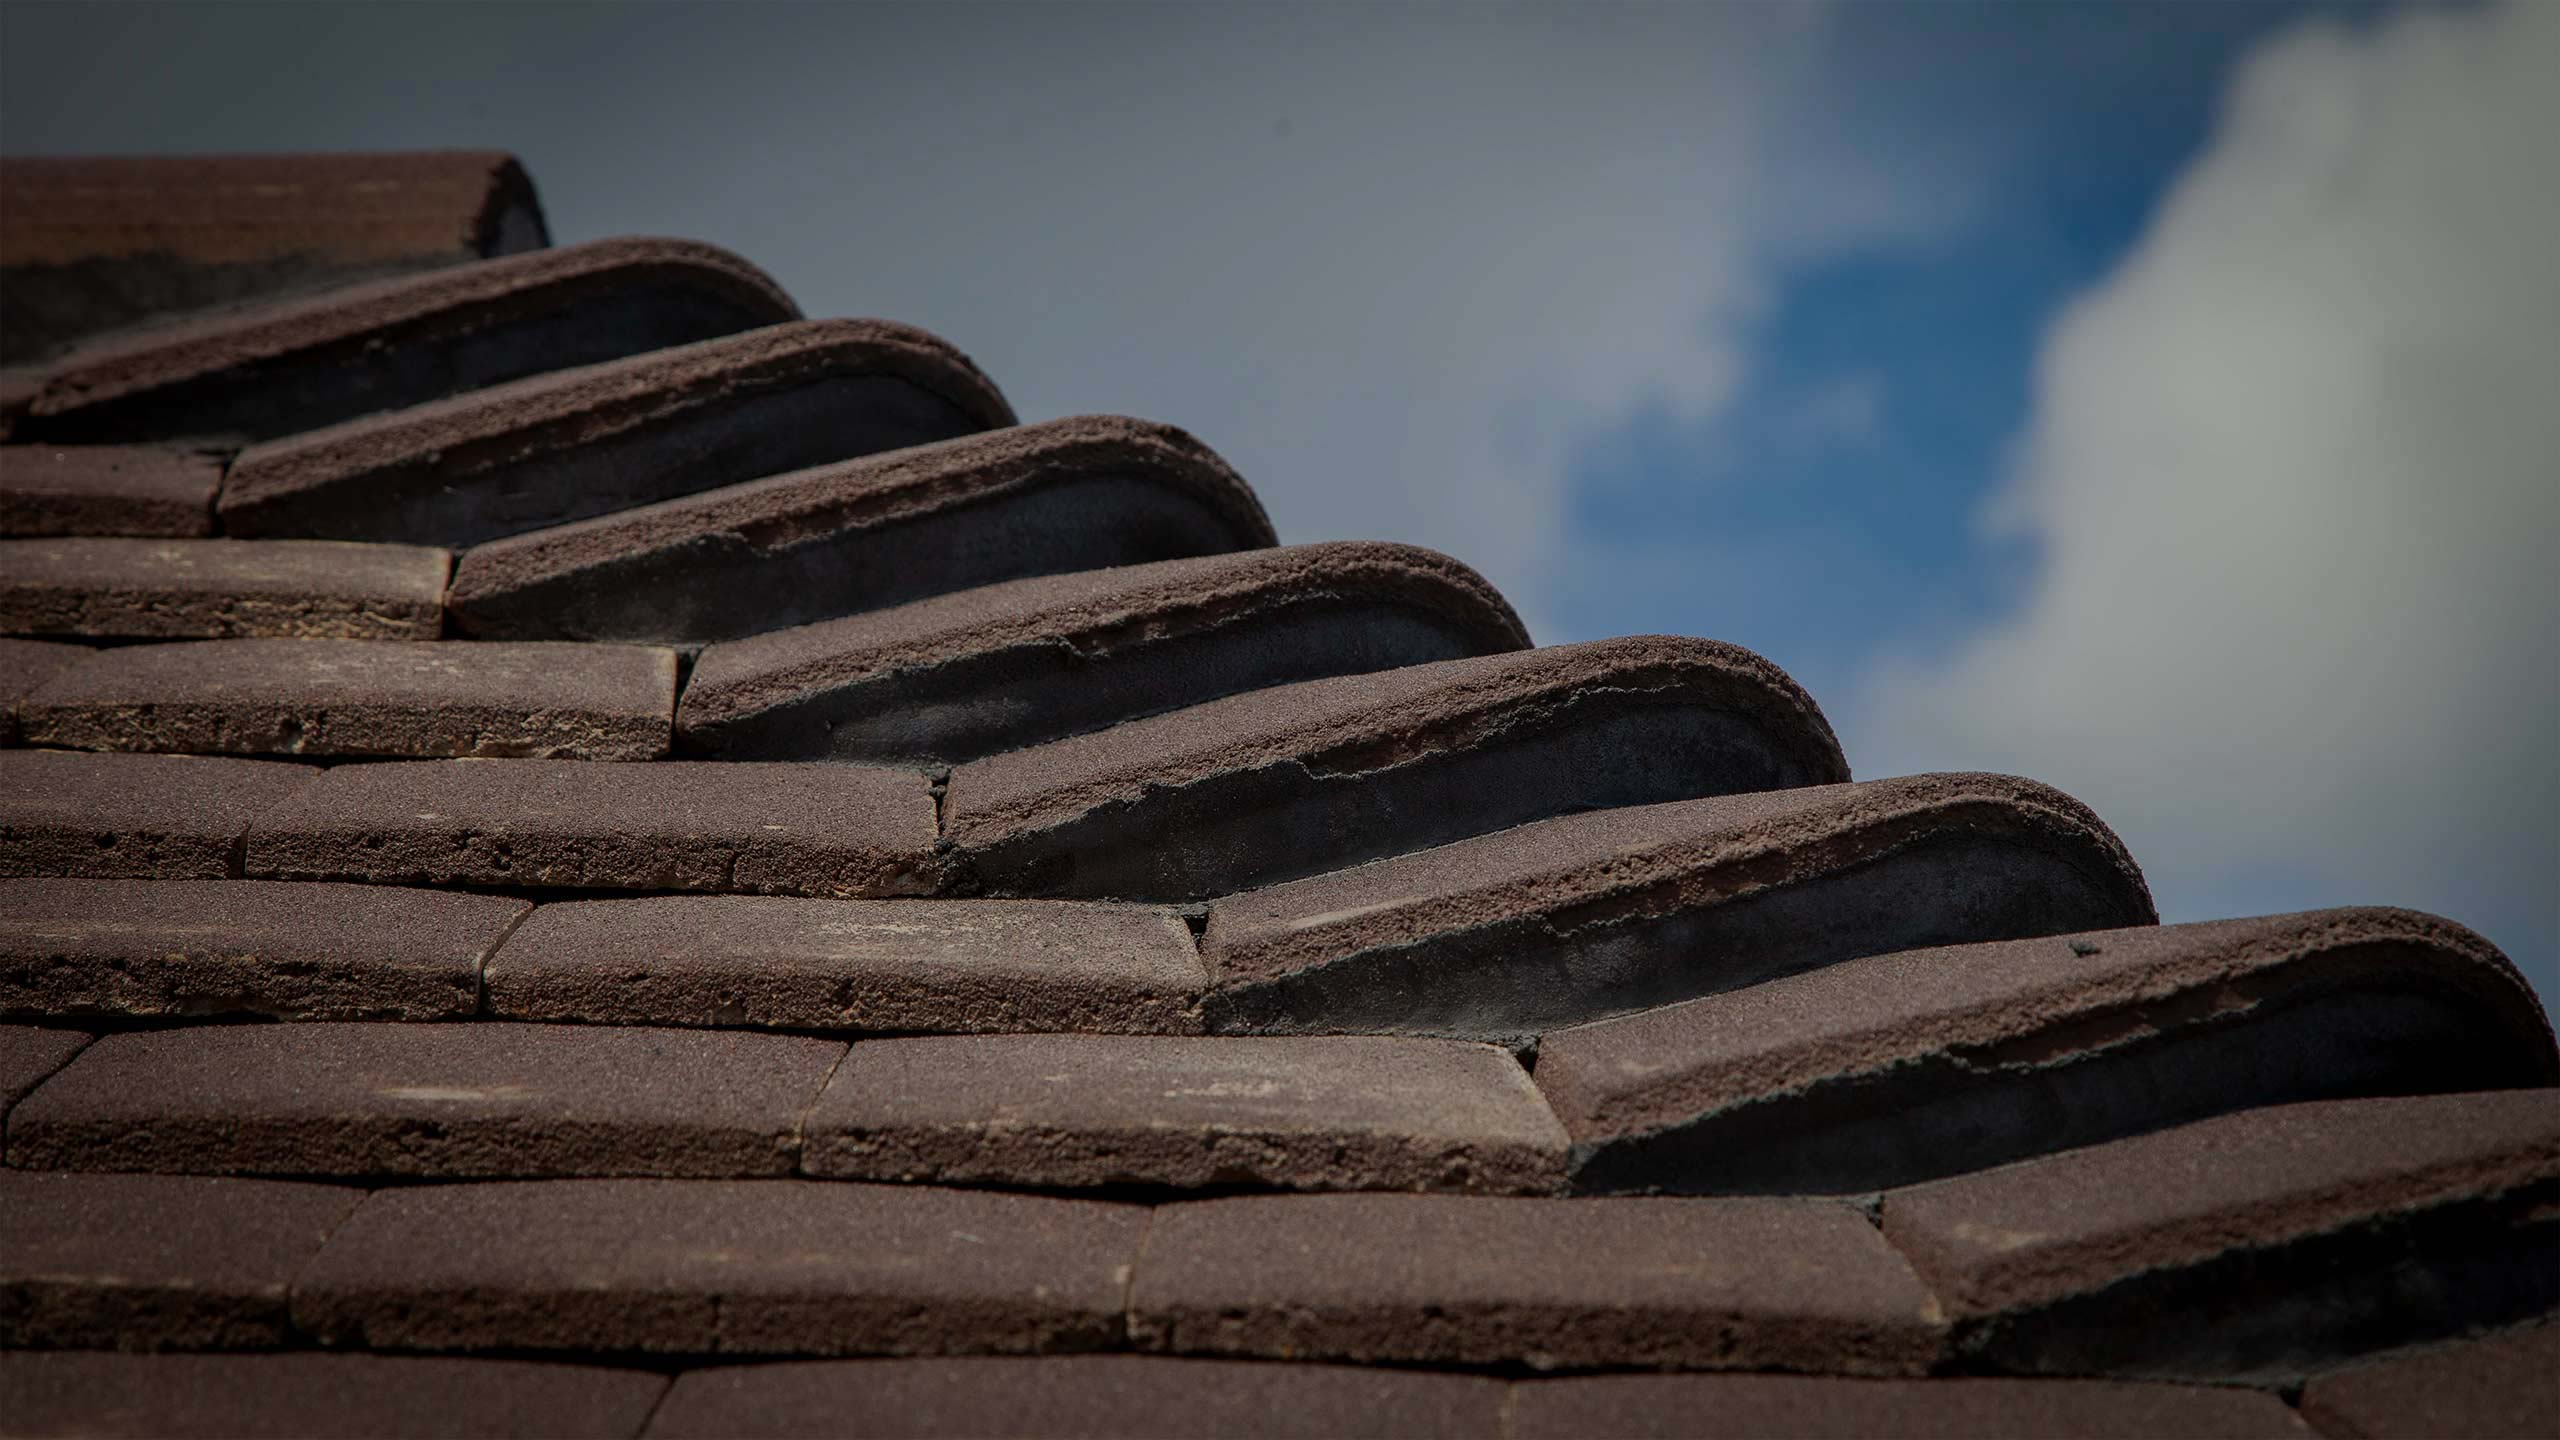 Ridge of a tiled roof by roofing specialists RJ Steeles builders in Sussex